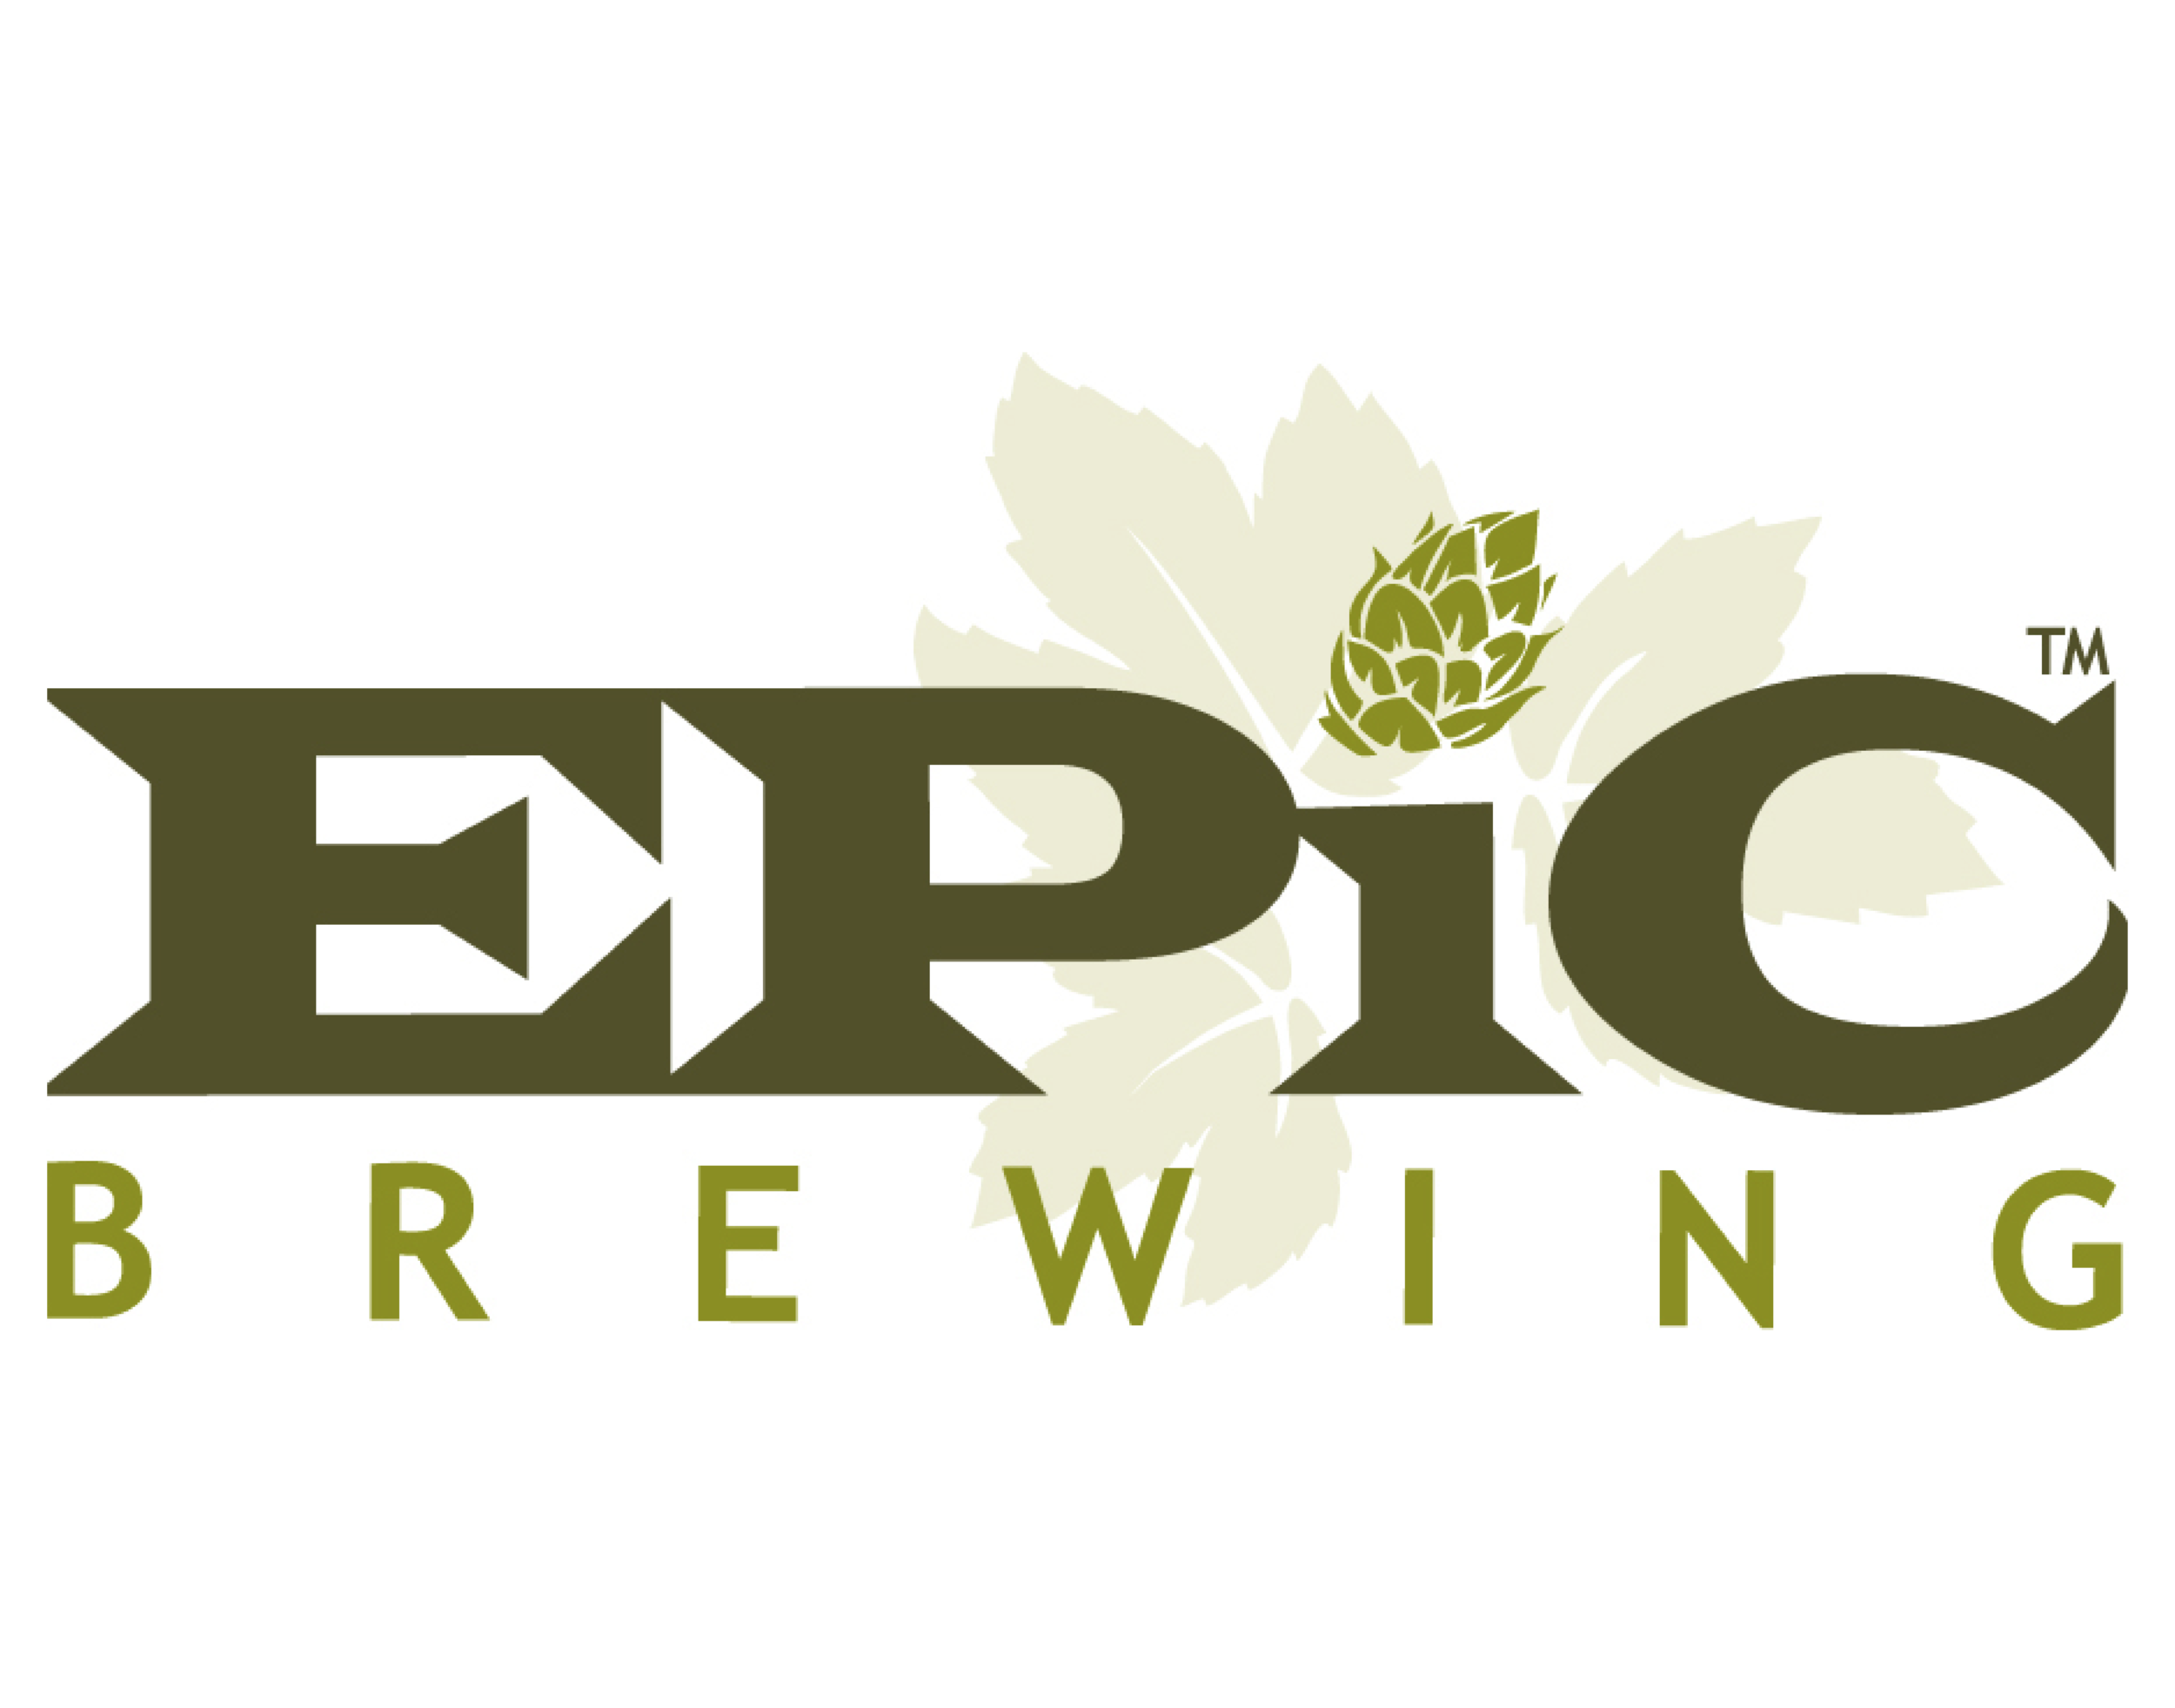 Epic Brewing logo. Links to Epic Brewing website.